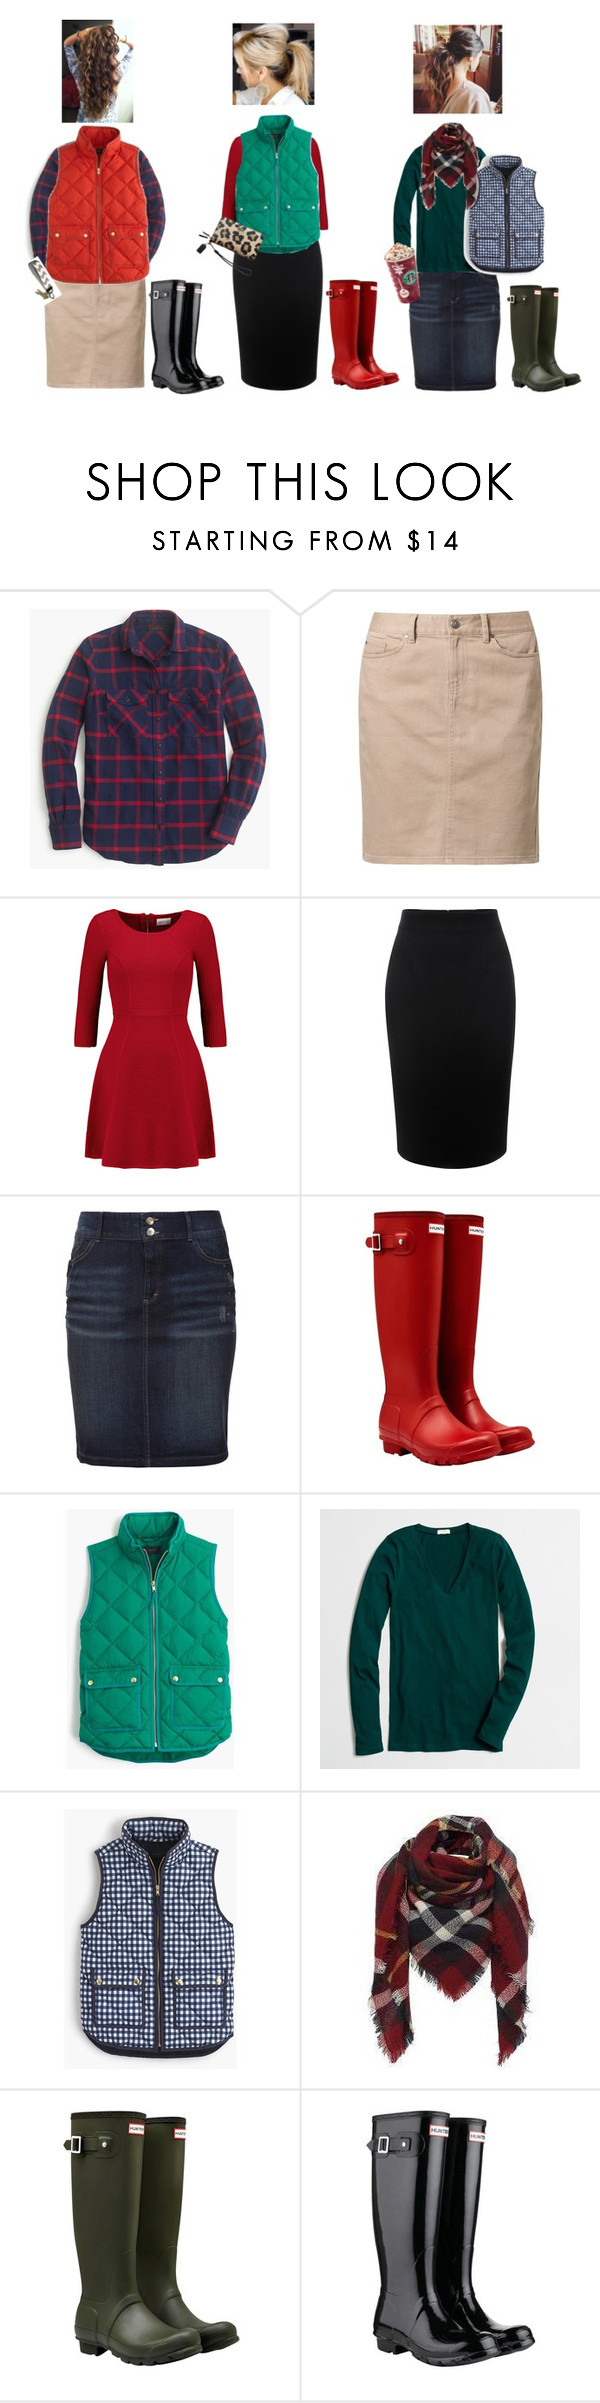 """""""Vest & Boots"""" by showcow9 ❤ liked on Polyvore featuring J.Crew, Tommy Hilfiger, Milly, Alexander McQueen, s.Oliver, Hunter and Coach"""